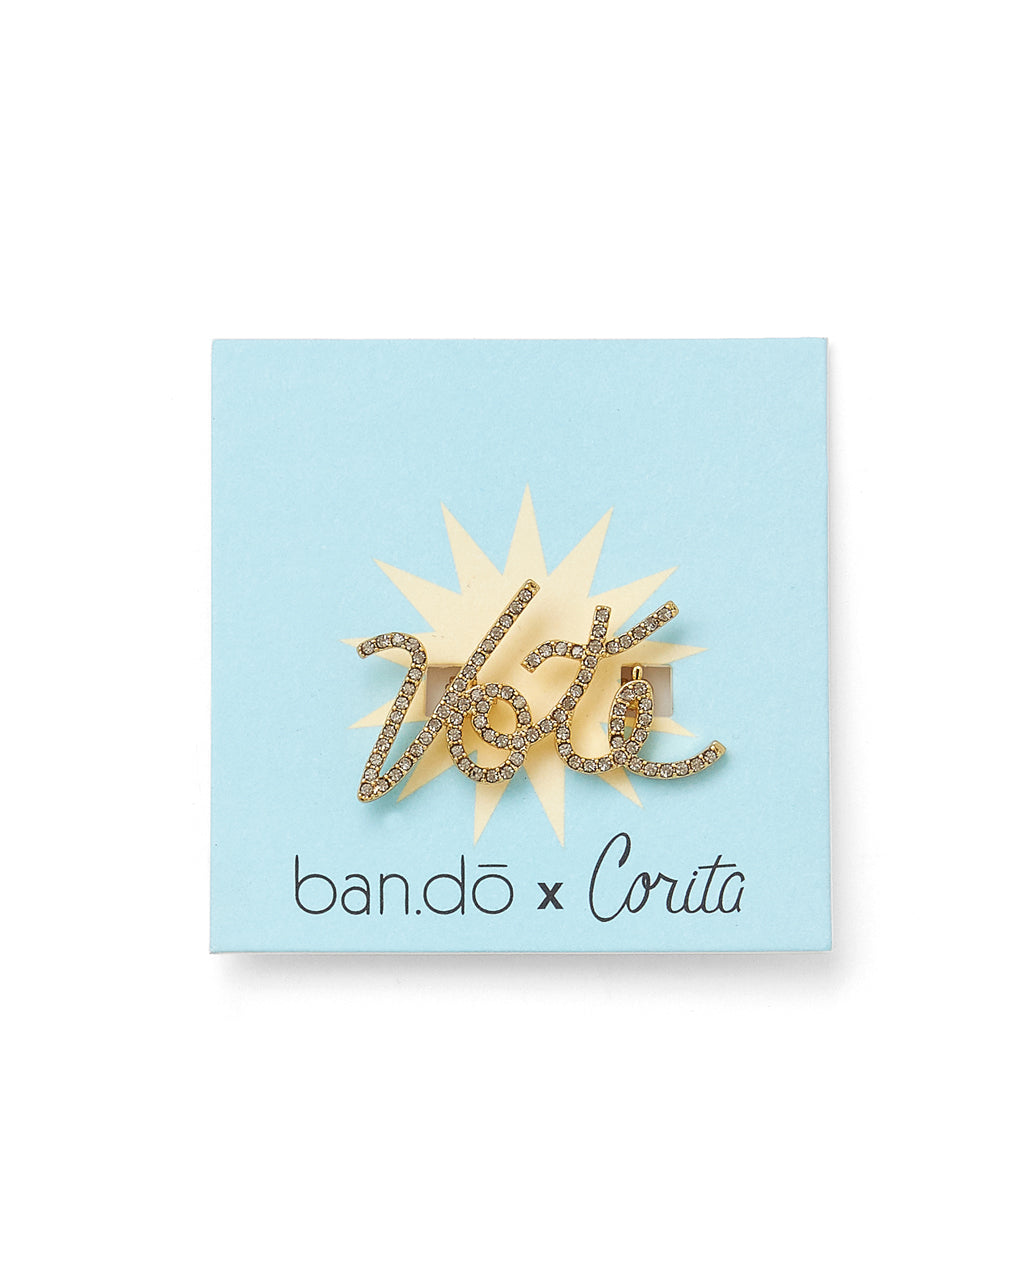 vote pin in cursive font with jewels all over shown on blue backer card